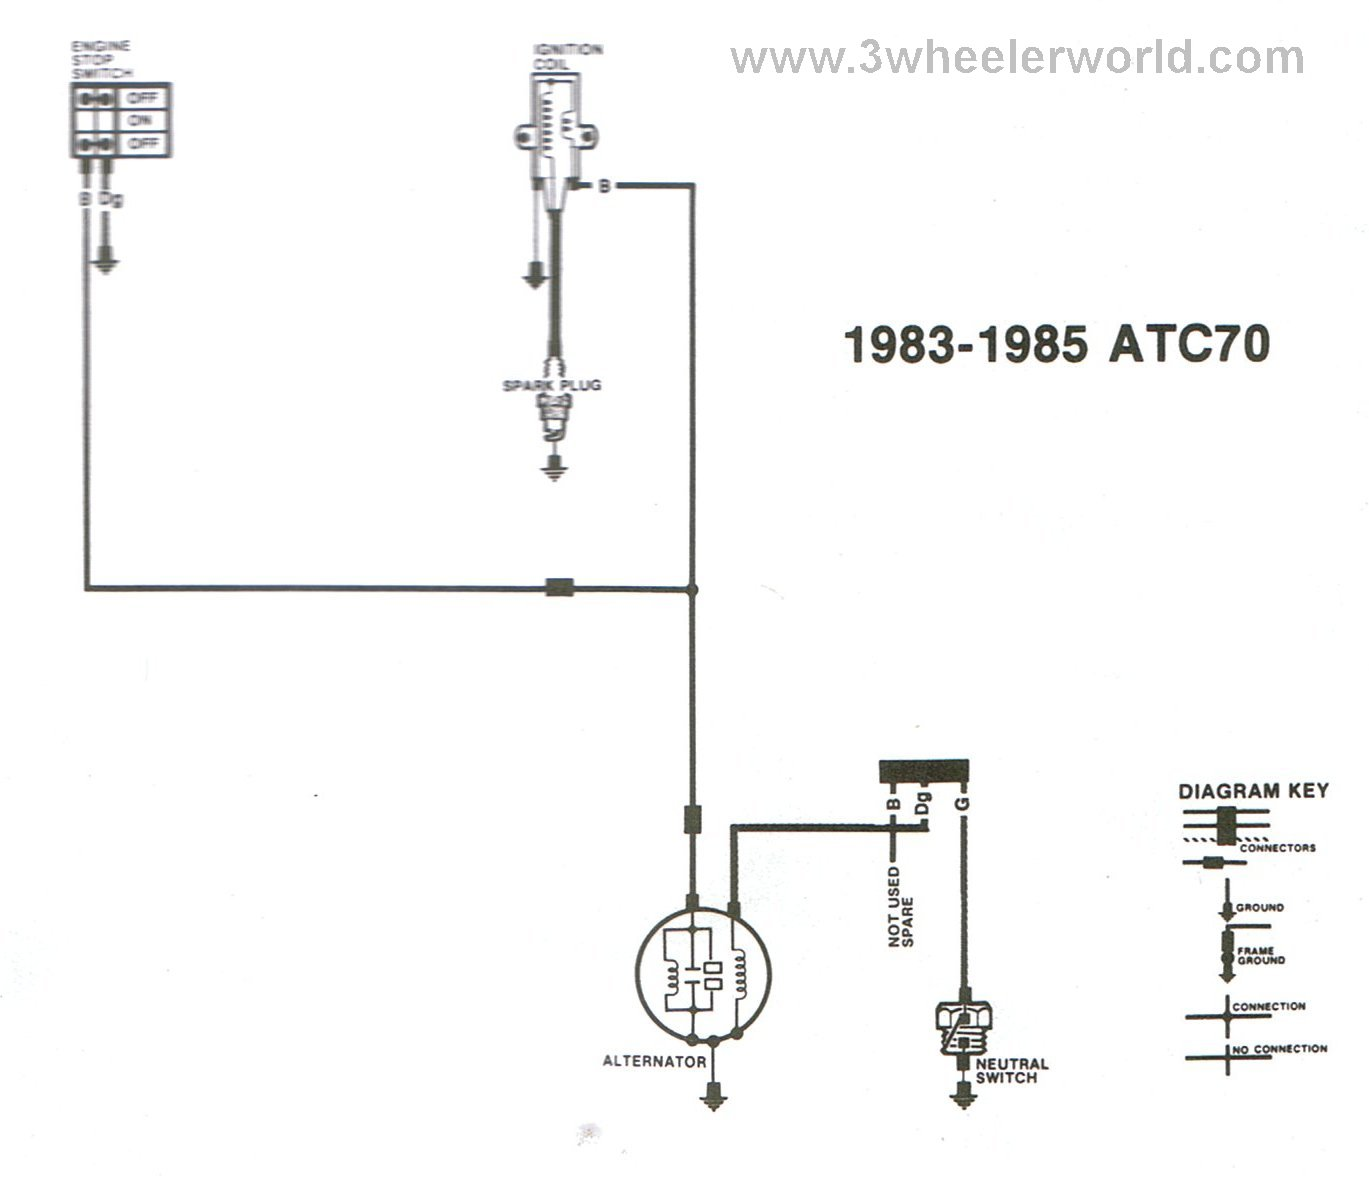 ATC70x83Thru85 atc 70 wiring diagram wiring diagram and schematic design 1983 honda atc 200 wiring diagram at webbmarketing.co